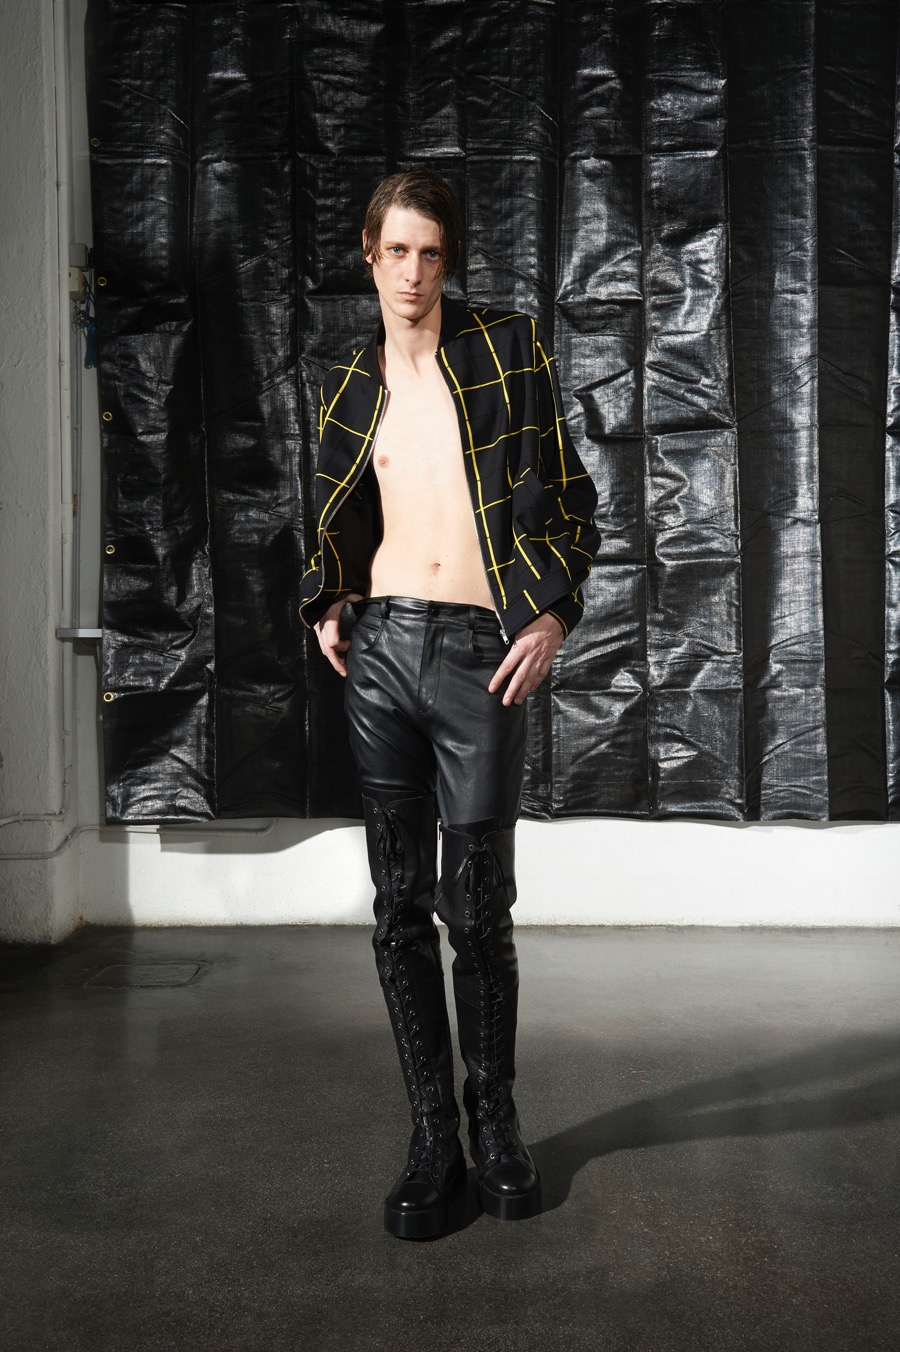 McQ Alexander McQueen Celebrates Scottish Roots for Fall